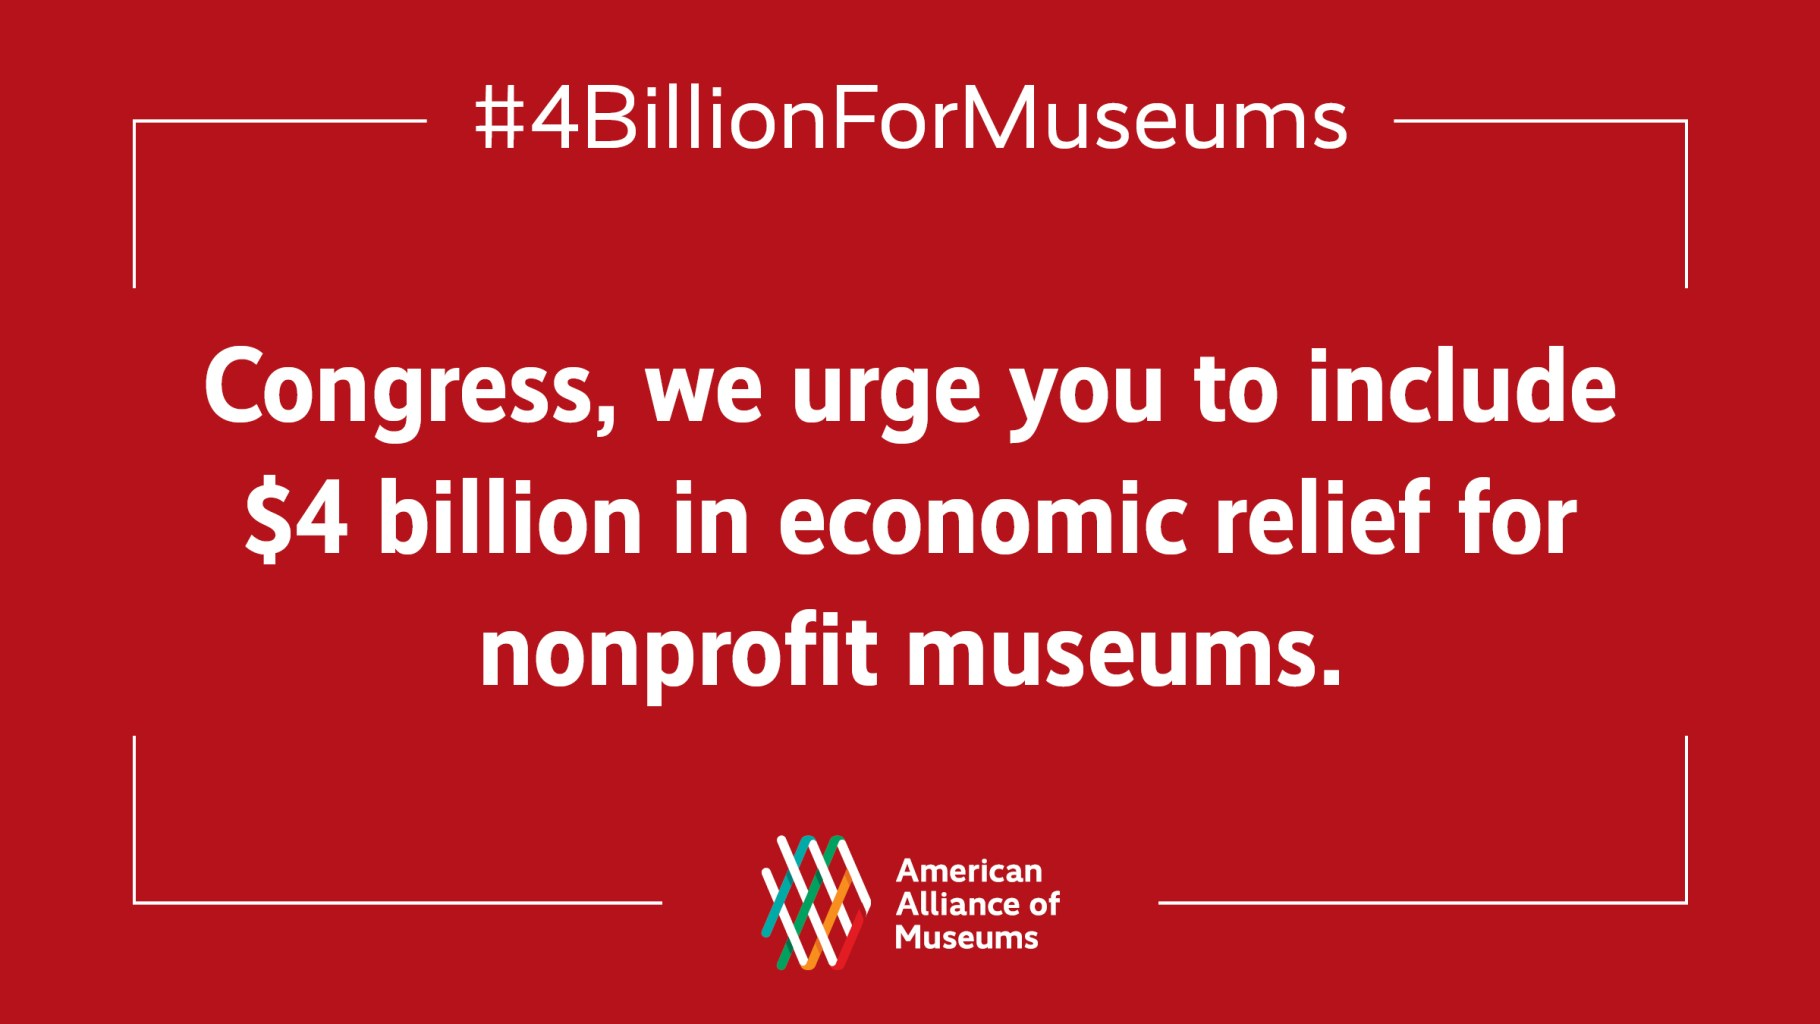 "A graphic reading ""#4BillionForMuseums. Congress, we urge you to include $4 billion in economic relief for nonprofits museums."" with the AAM logo underneath."